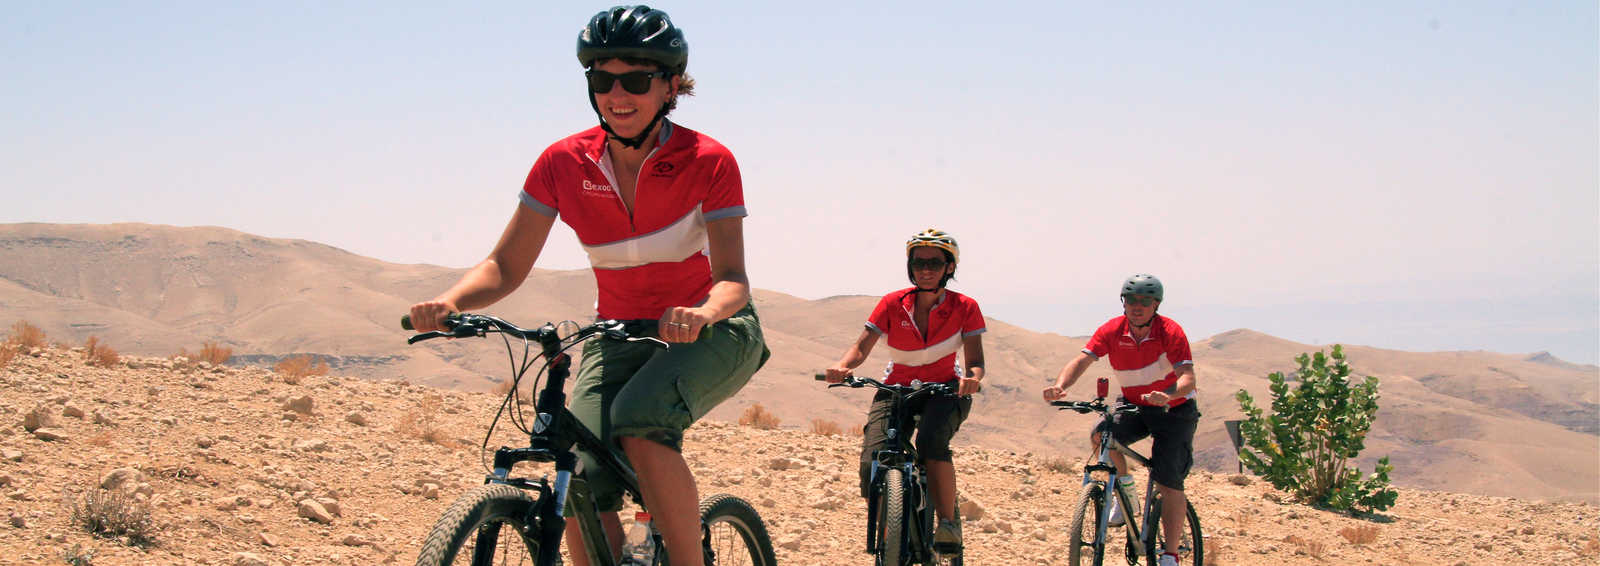 Mountain biking in Jordan